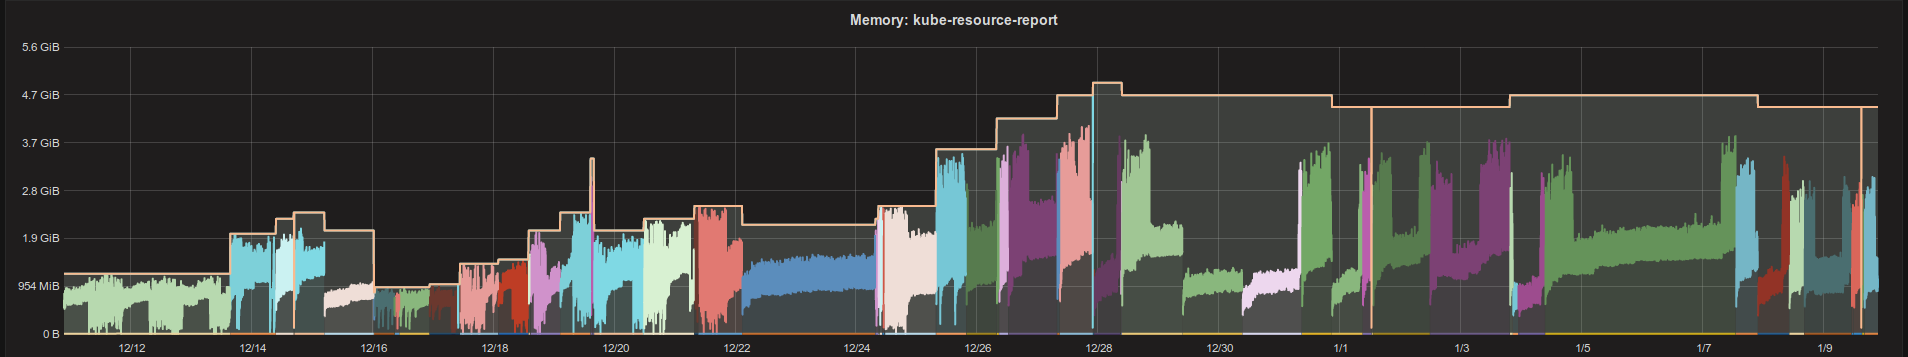 ../galleries/kubernetes-vpa-memory.png